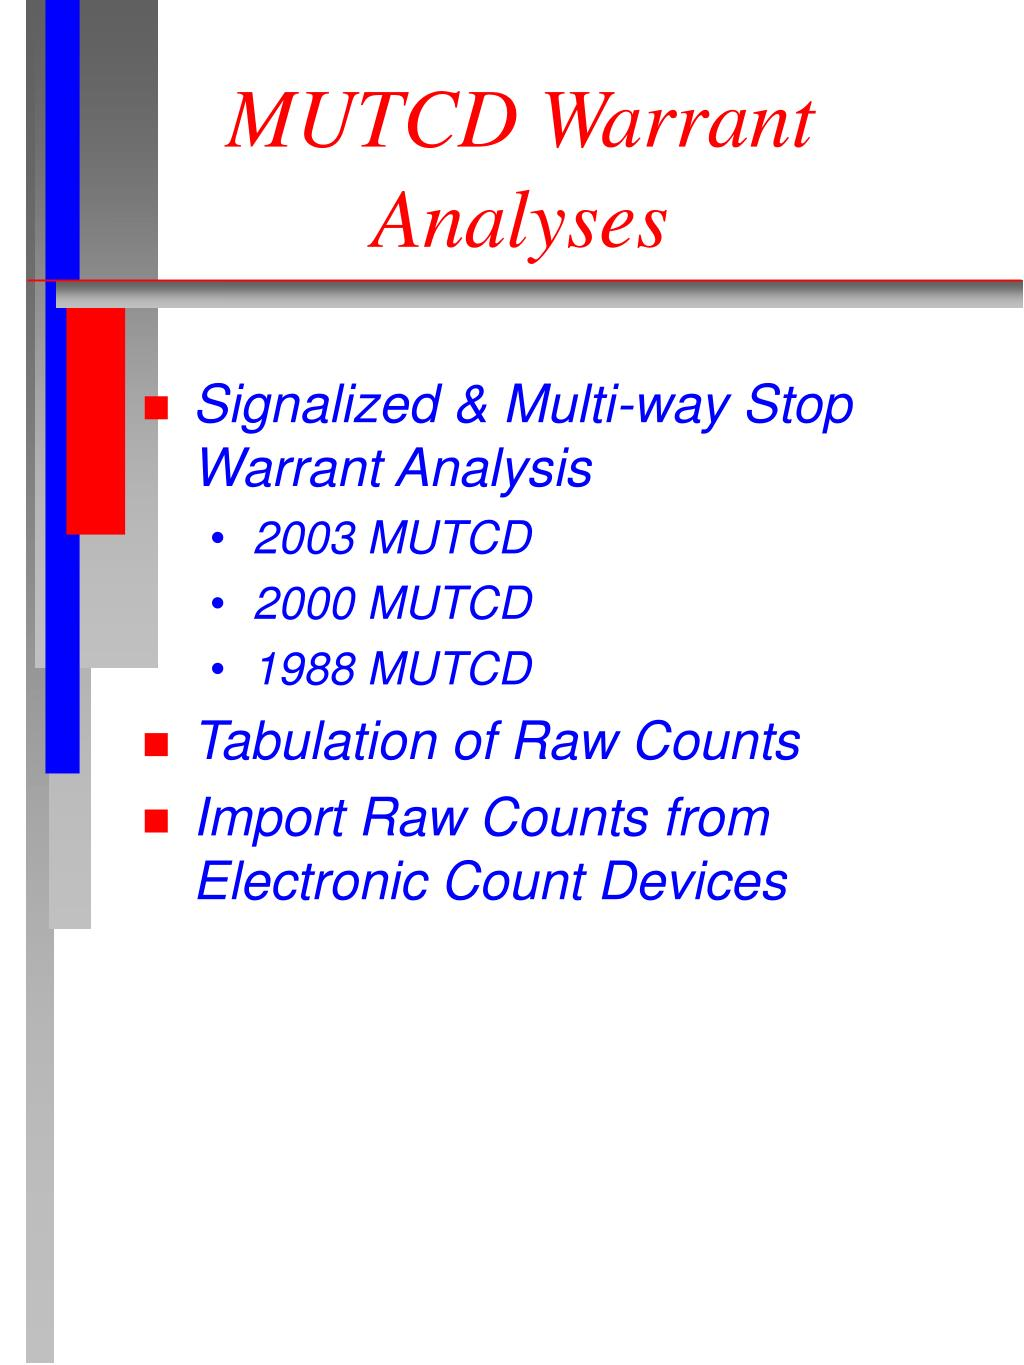 MUTCD Warrant Analyses